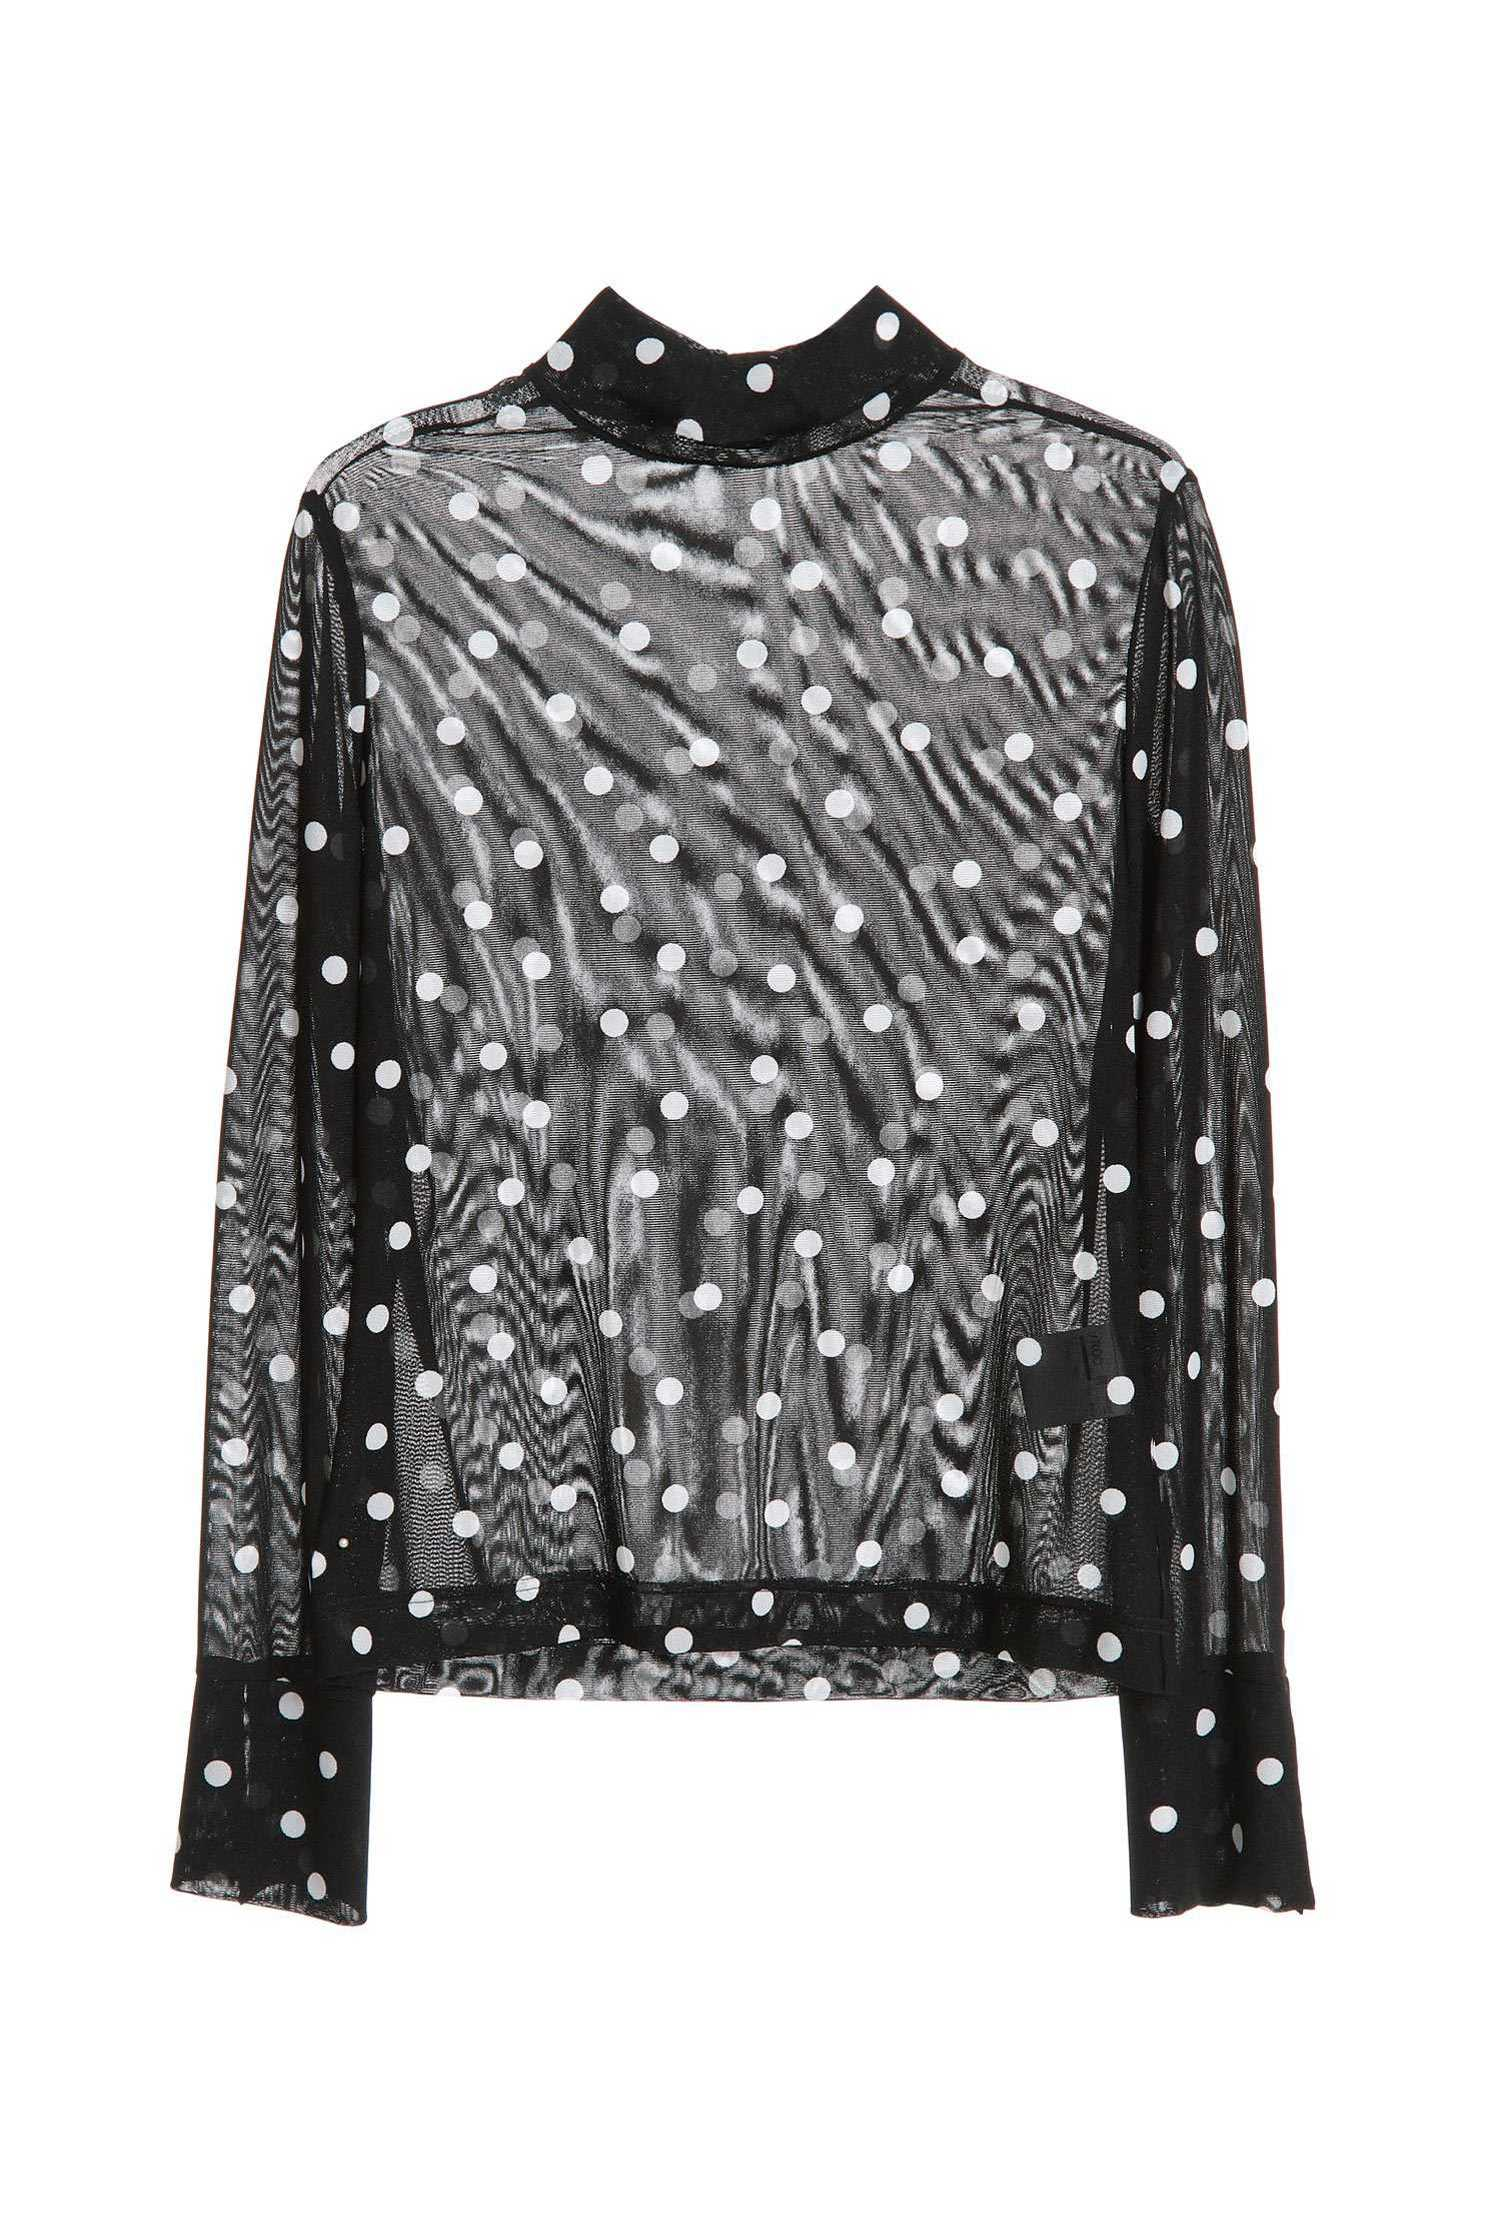 Large polka dot high-necked long-sleeved top